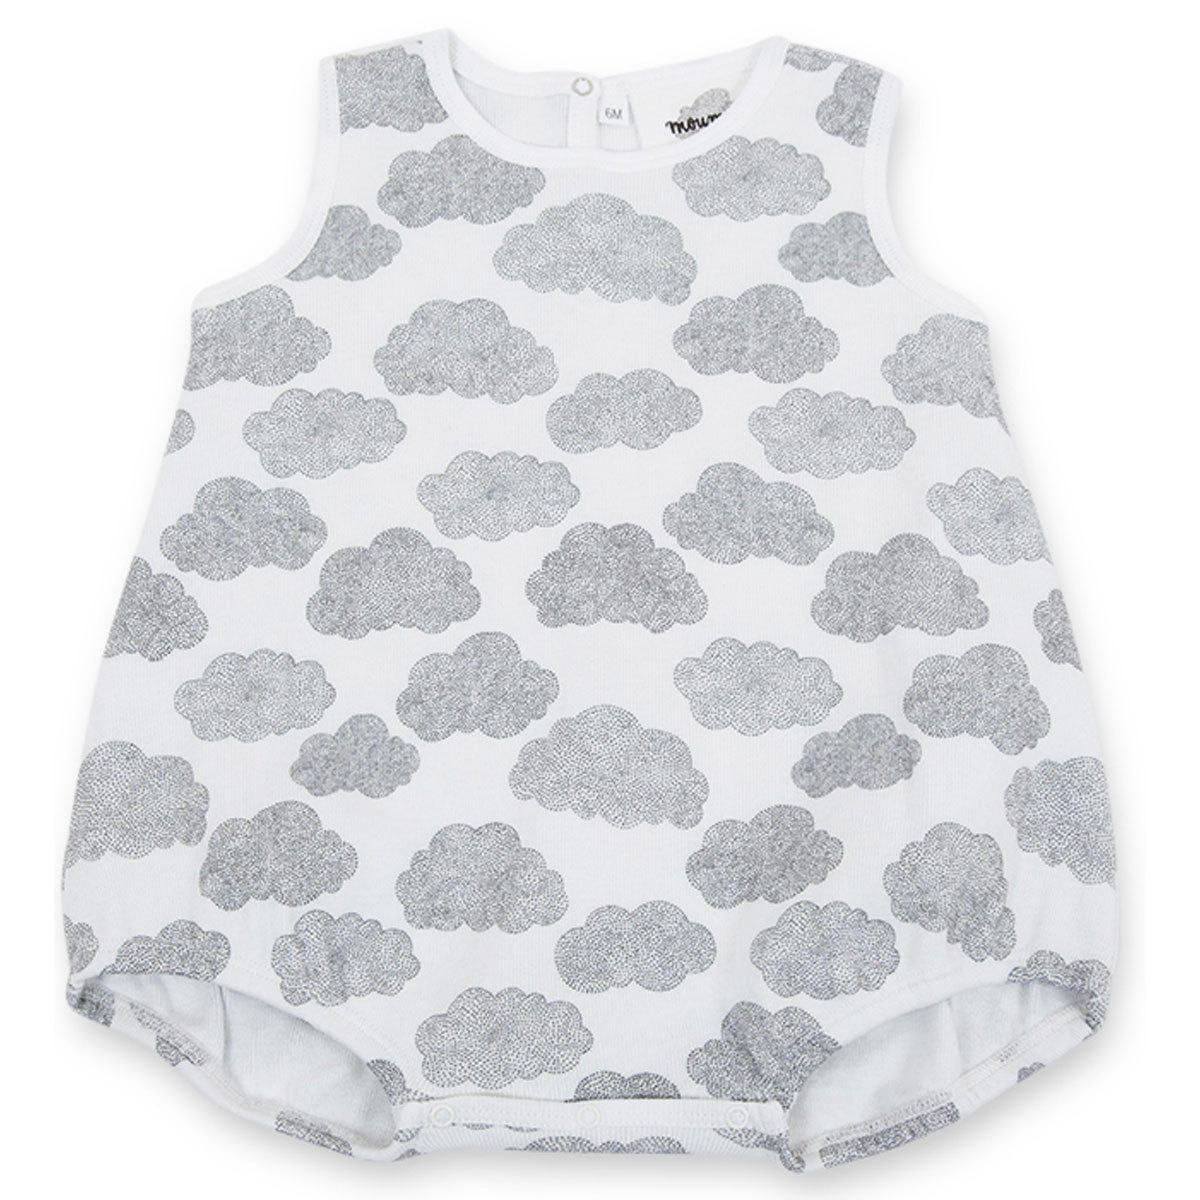 Robe & Combinaison Barboteuse Baba - Nuages - 24 Mois Barboteuse Baba - Nuages - 24 Mois